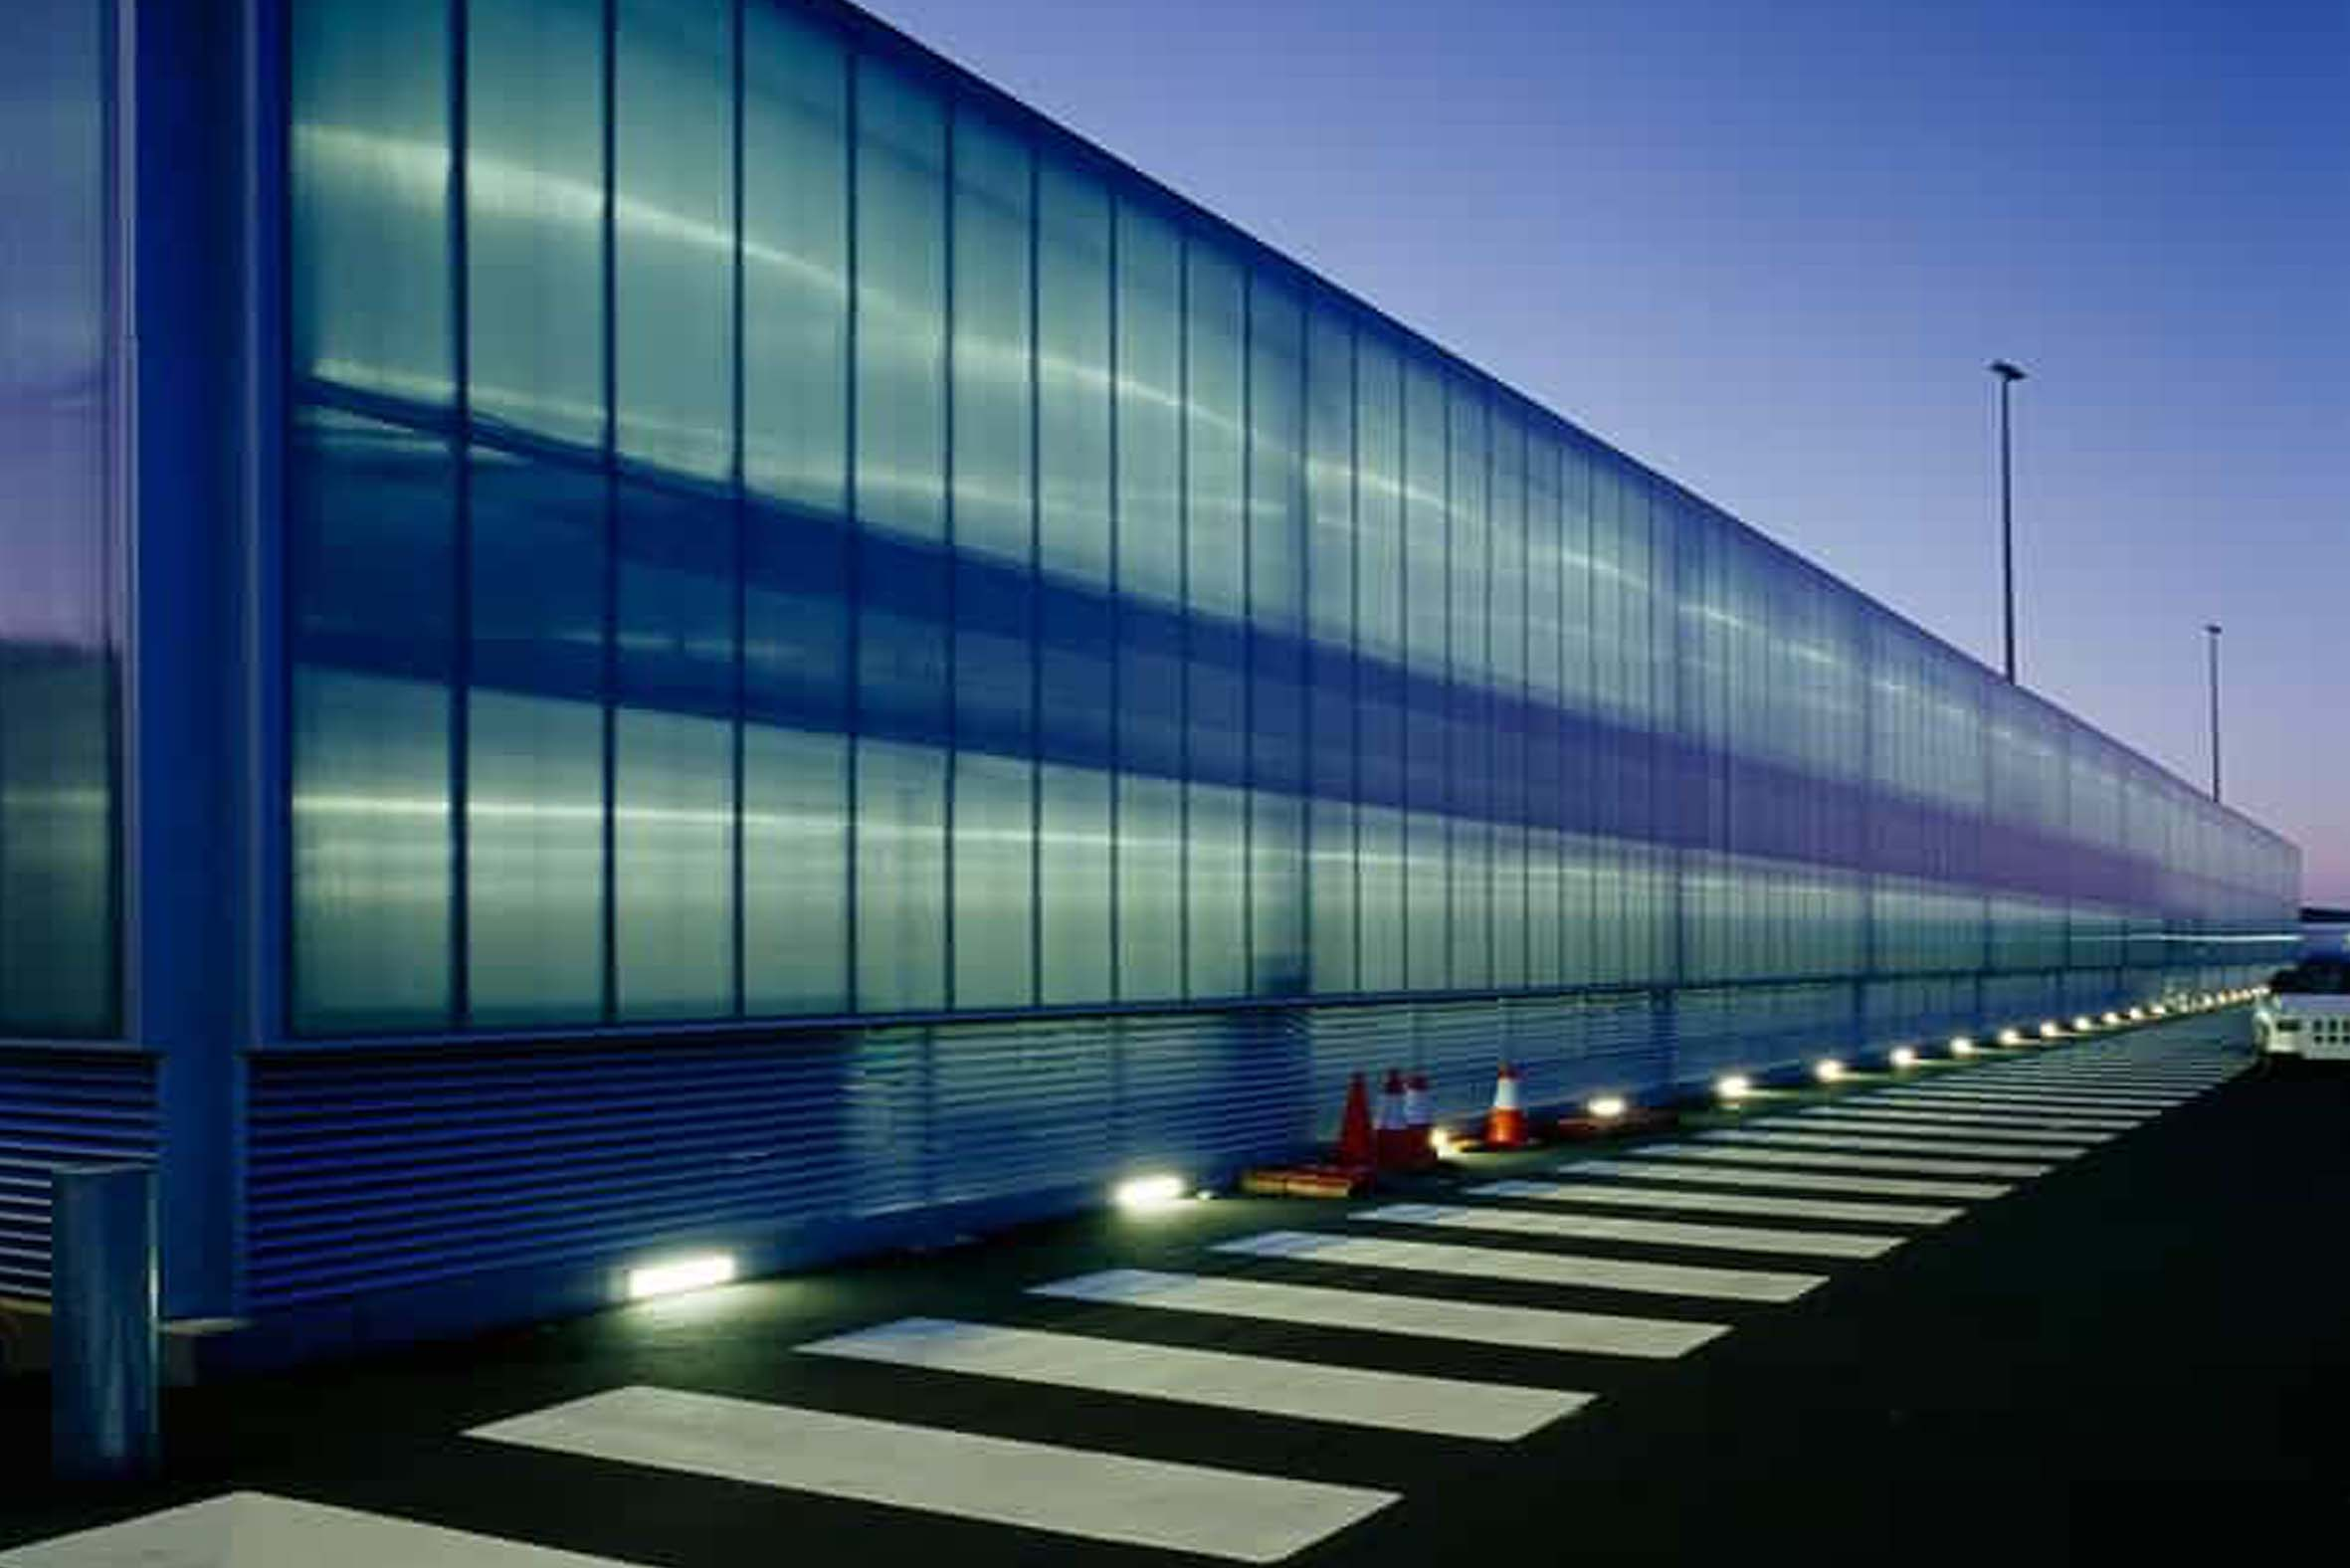 Hobart Airport Leads in Energy Efficiency with New Airport Façade